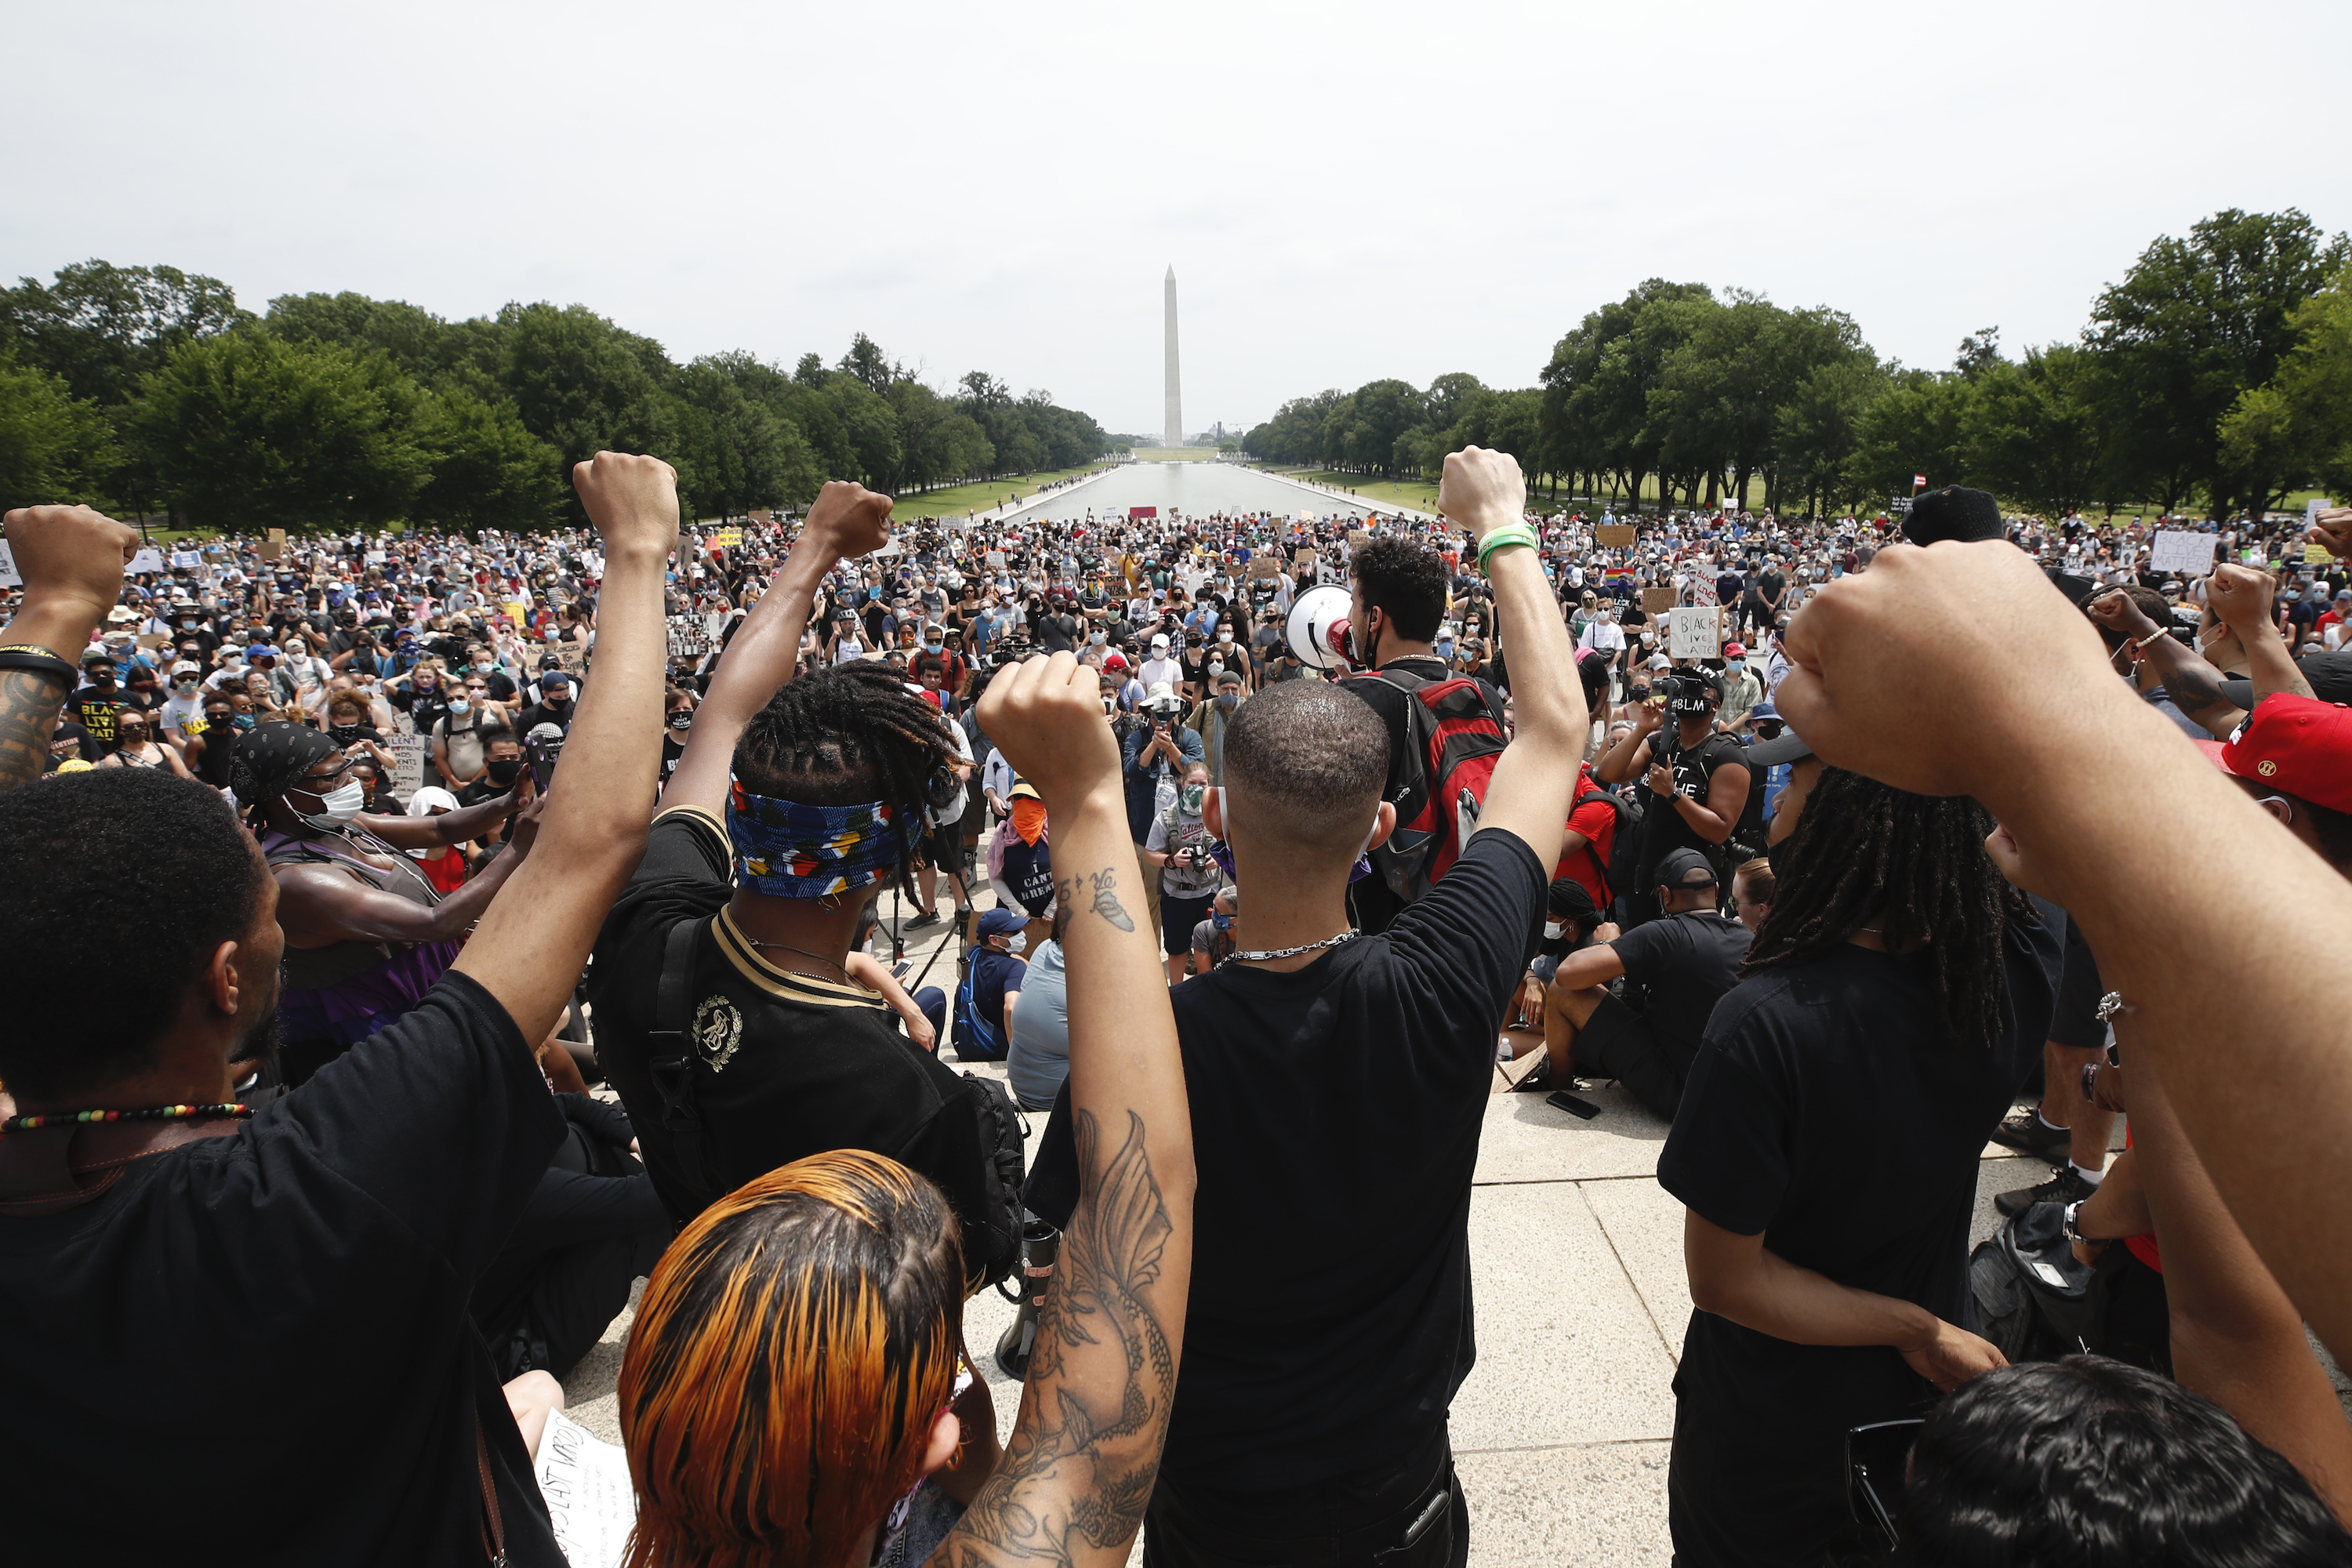 Demonstrators protest on June 6, 2020, at the Lincoln Memorial in Washington D.C.